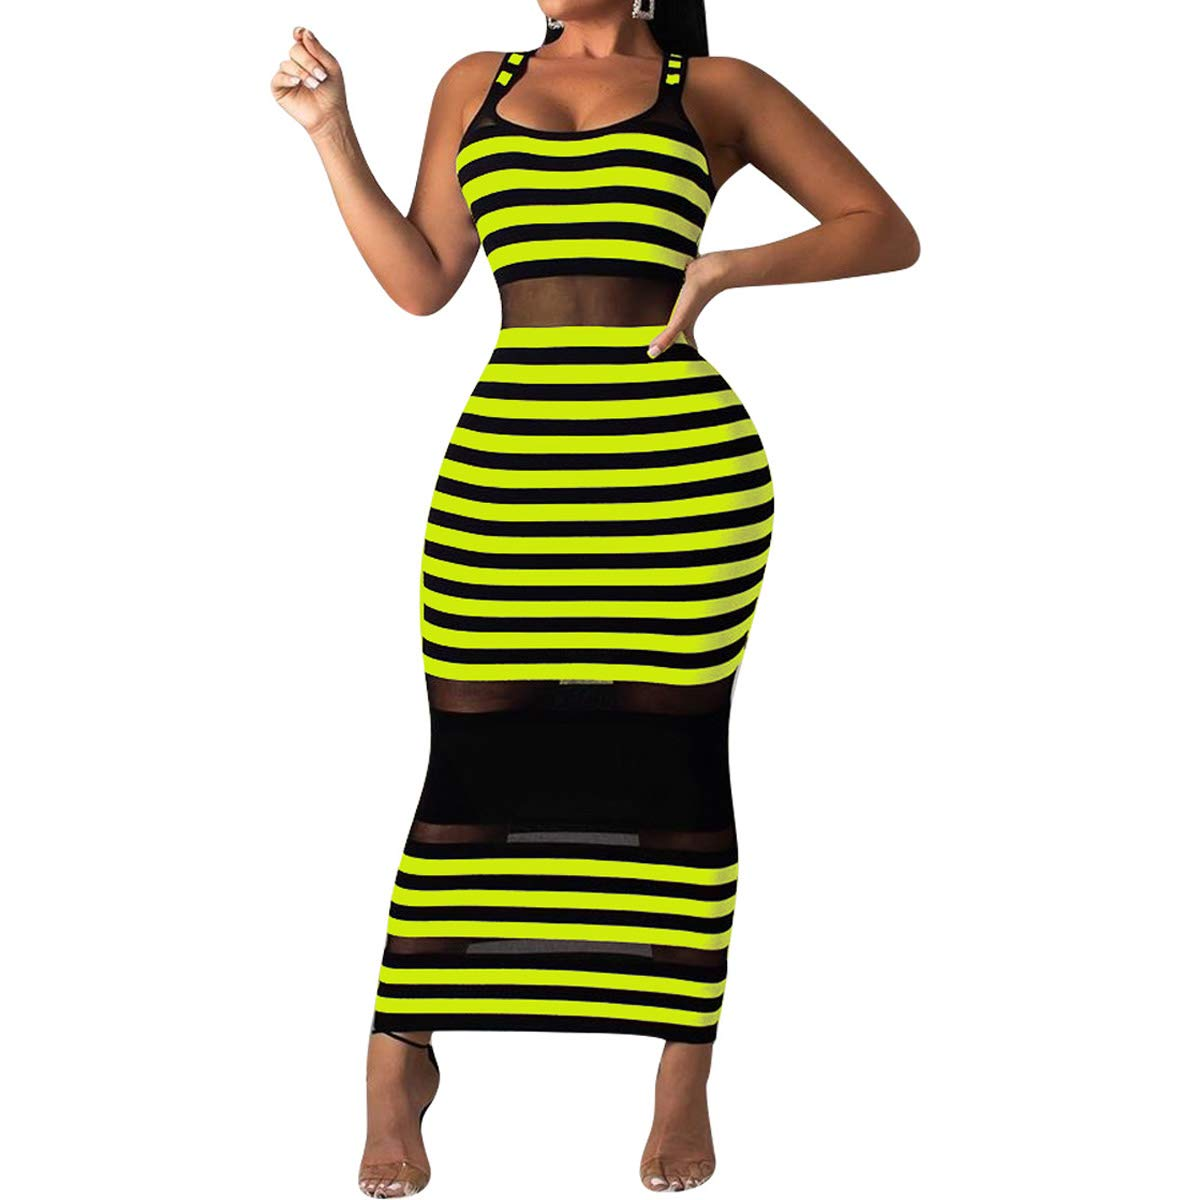 Available at Amazon: Salimdy Bandage Dresses for Women - Sexy Long Sleeve Floarl Leopard Print Mesh Bodycon Long Party Club Sheath Dress